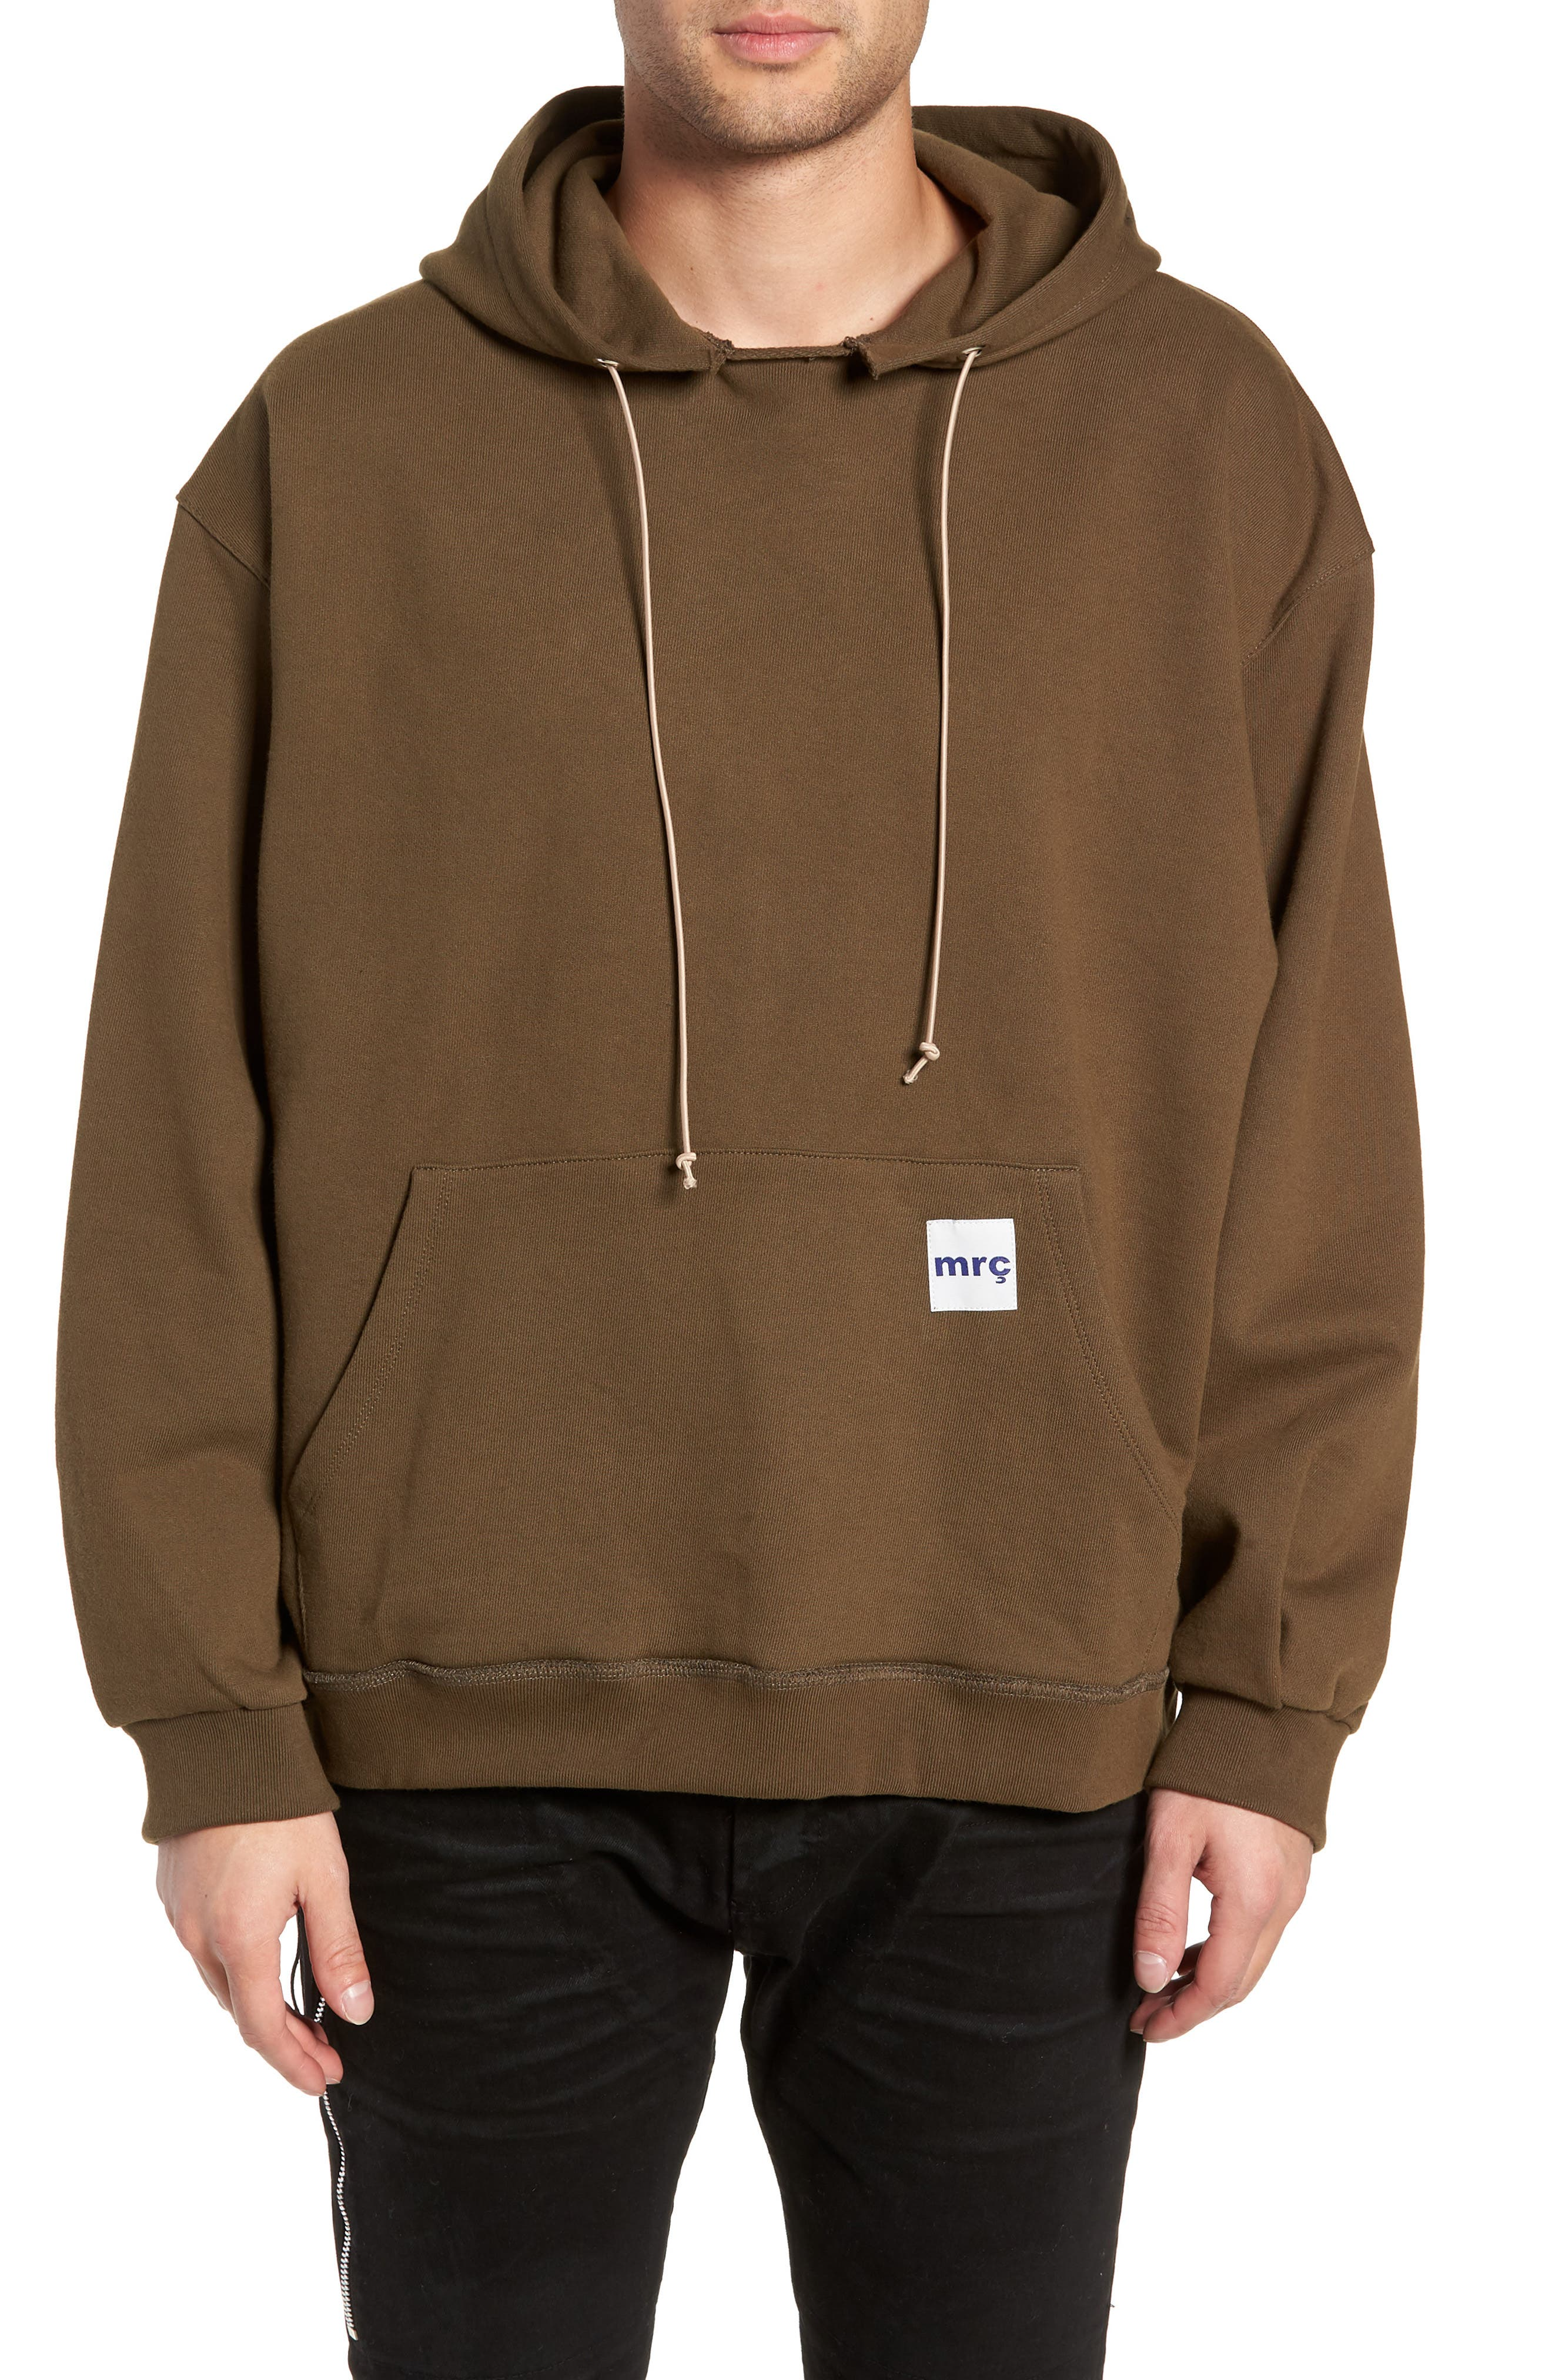 MR. COMPLETELY Factory Oversize Hoodie in Olive